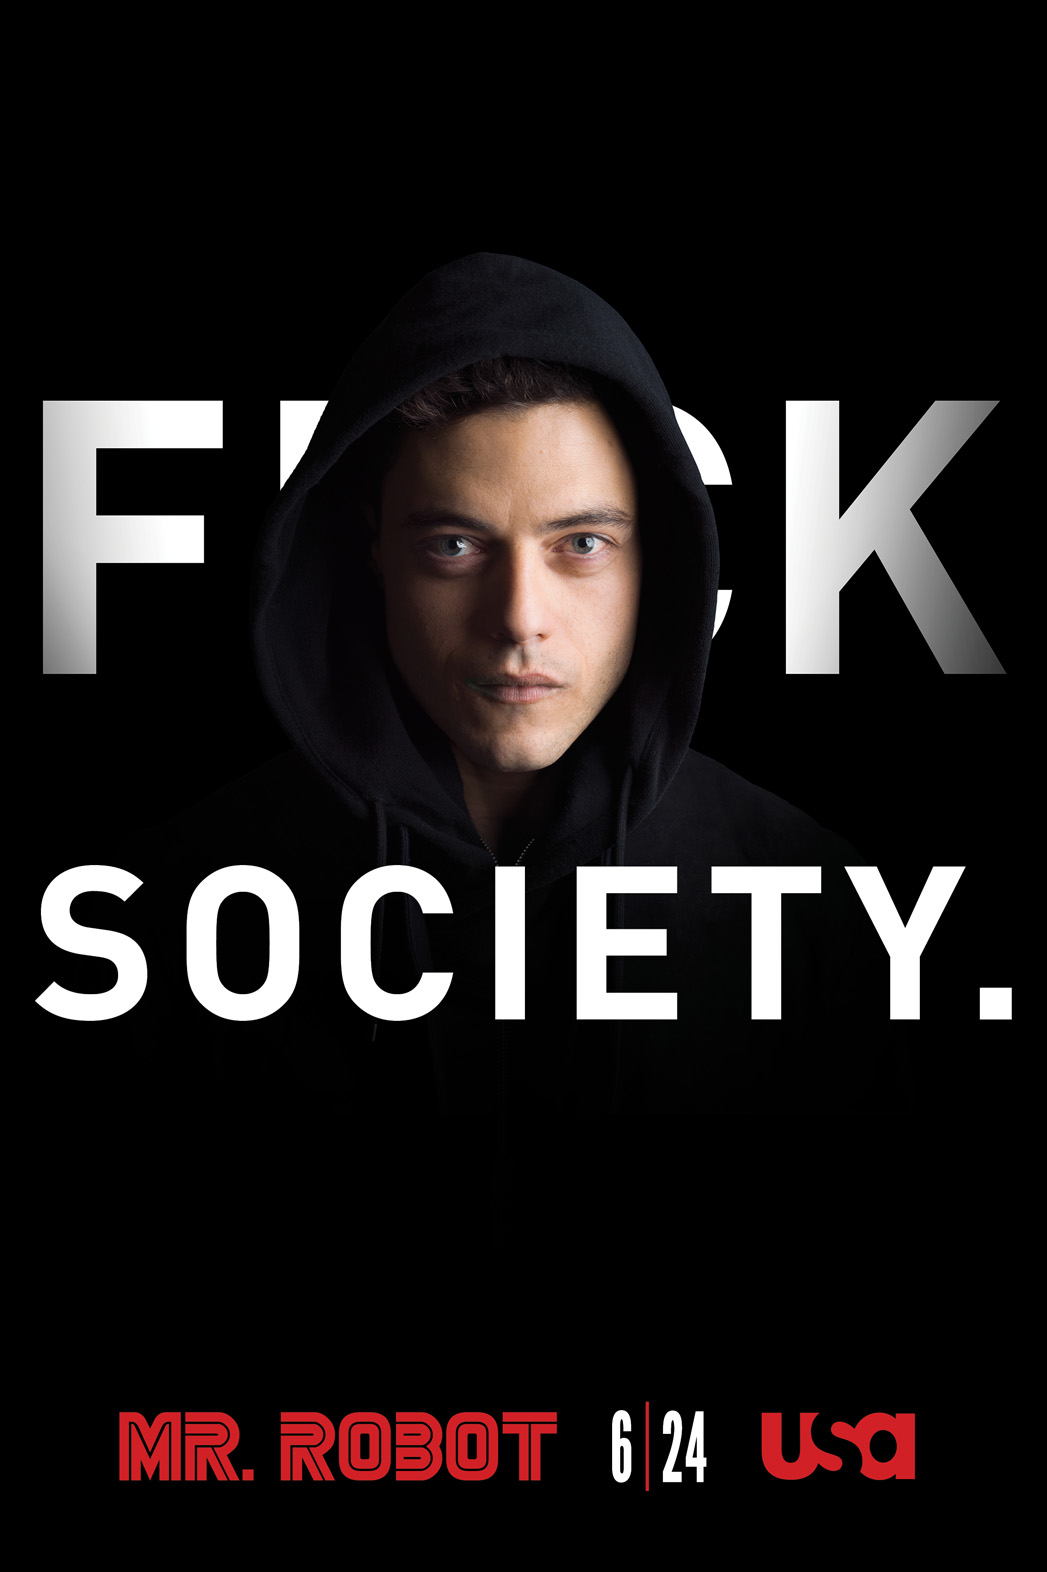 Mr. Robot (2015) - TV Series